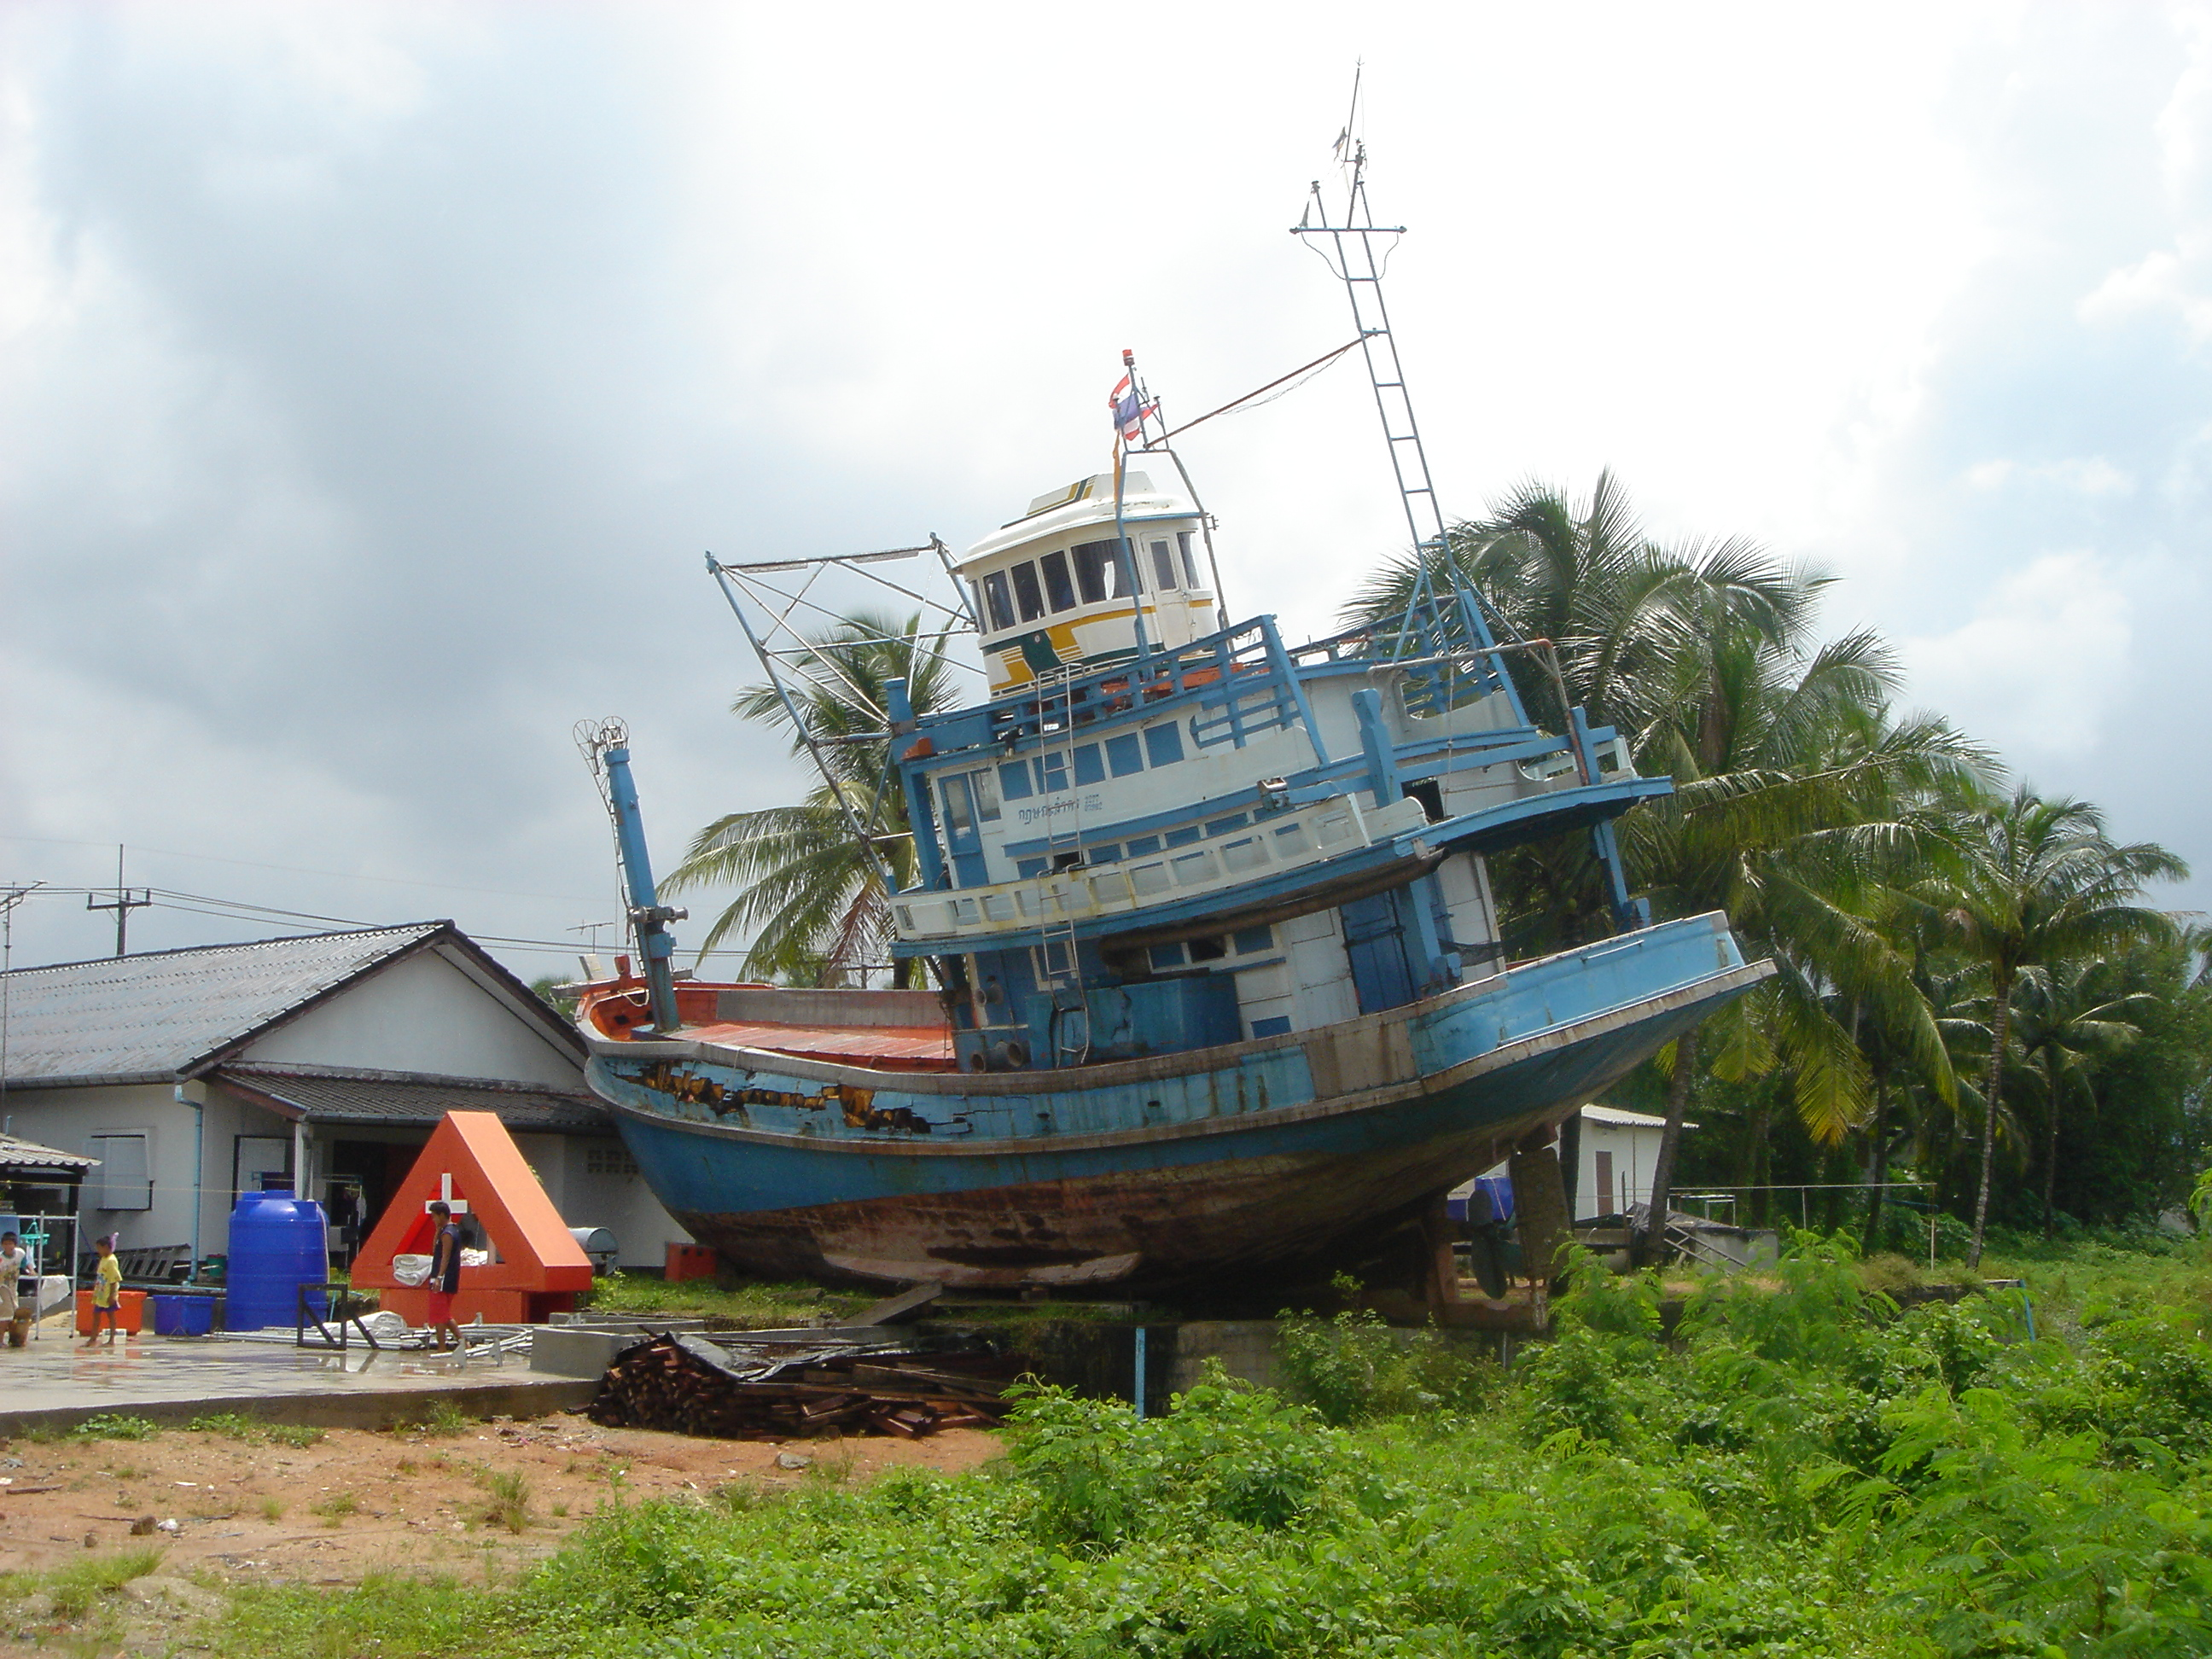 2005oct15_fishingvillage_061.jpg